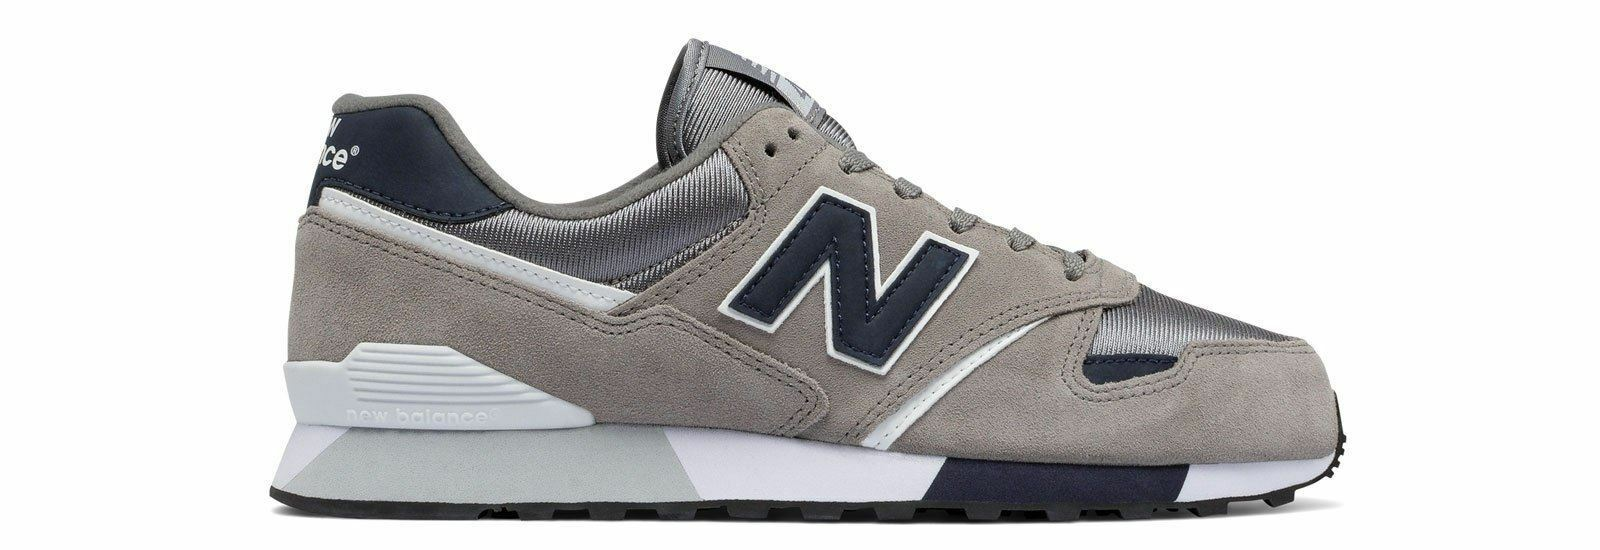 New Balance Classic U446GN gris Navy hommes Fashion Chaussures